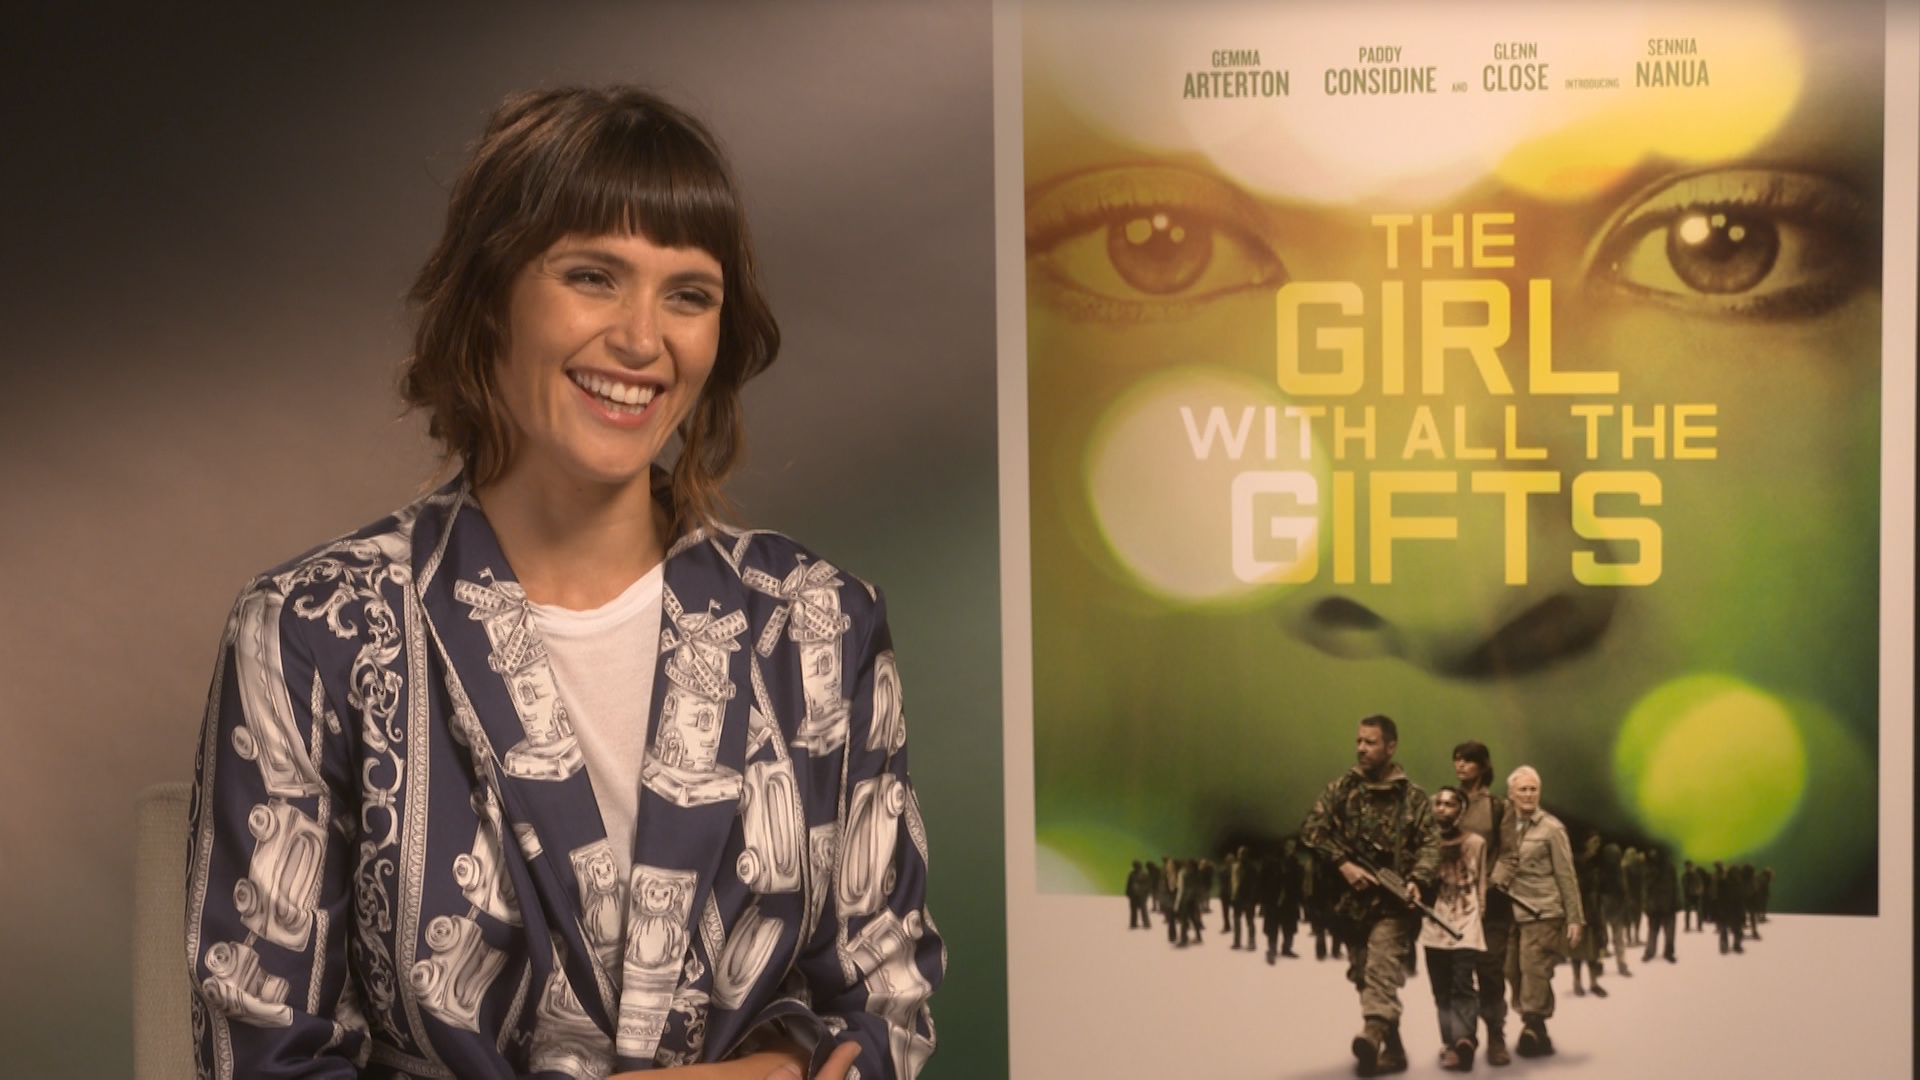 Exclusive: Gemma Arterton on The Girl With All the Gifts ...